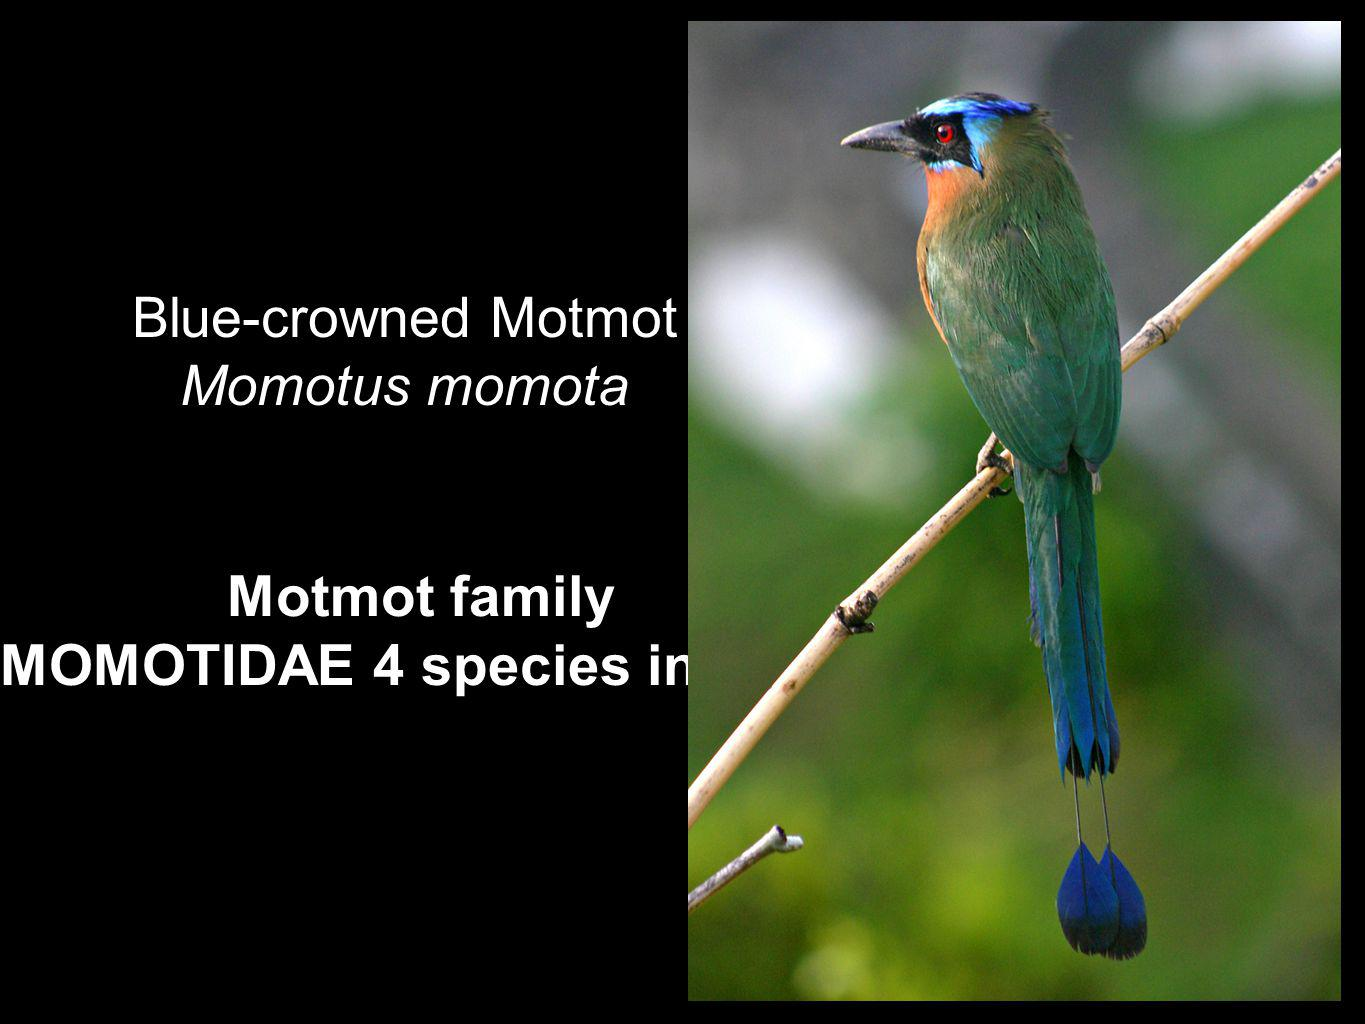 Motmot family MOMOTIDAE 4 species in Perú Blue-crowned Motmot Momotus momota